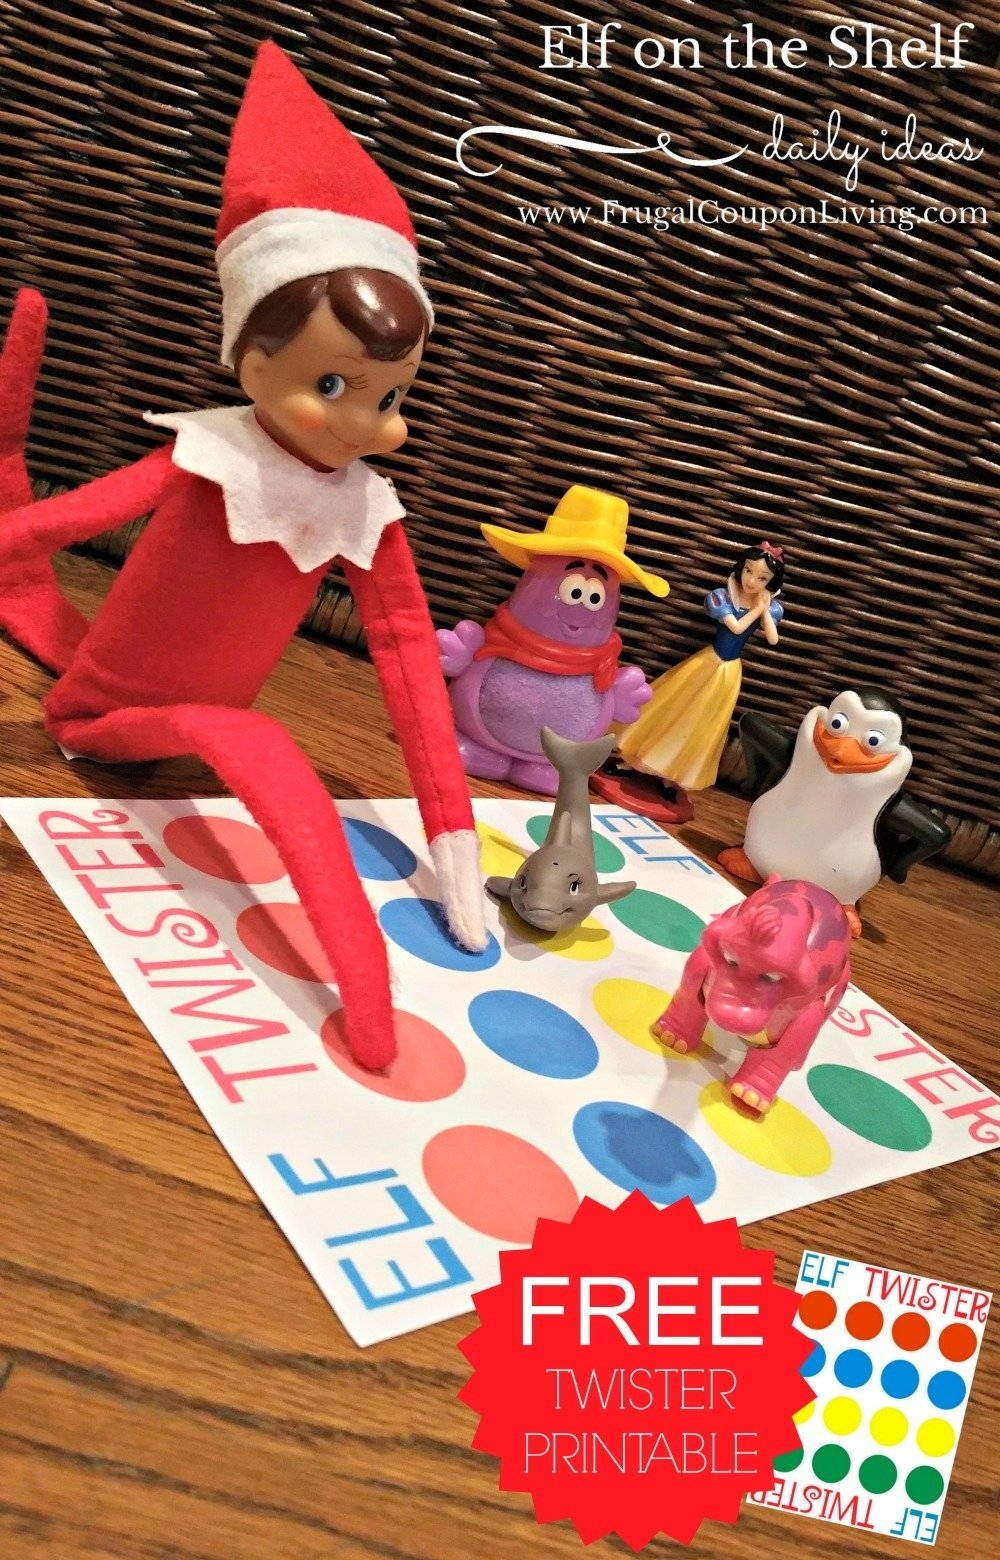 10 Most Recommended Elf On The Shelf Ideas elf on the shelf ideas elf twister printable 2020